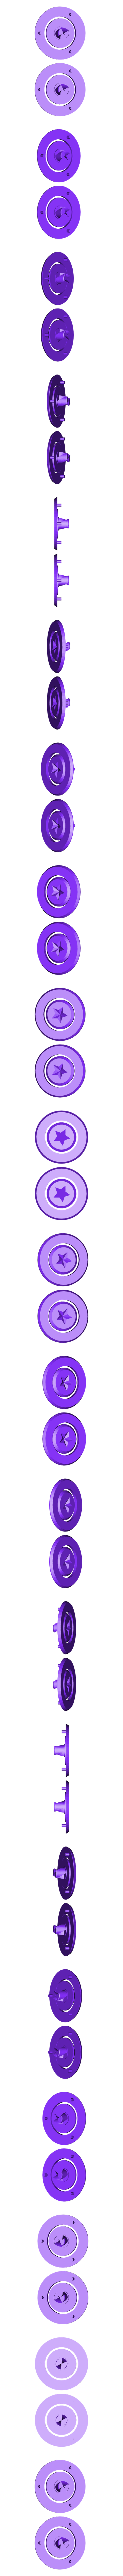 30_degree_Xmas_Spinners_Caps.stl Download free STL file Christmas Spinners • Model to 3D print, Zippityboomba